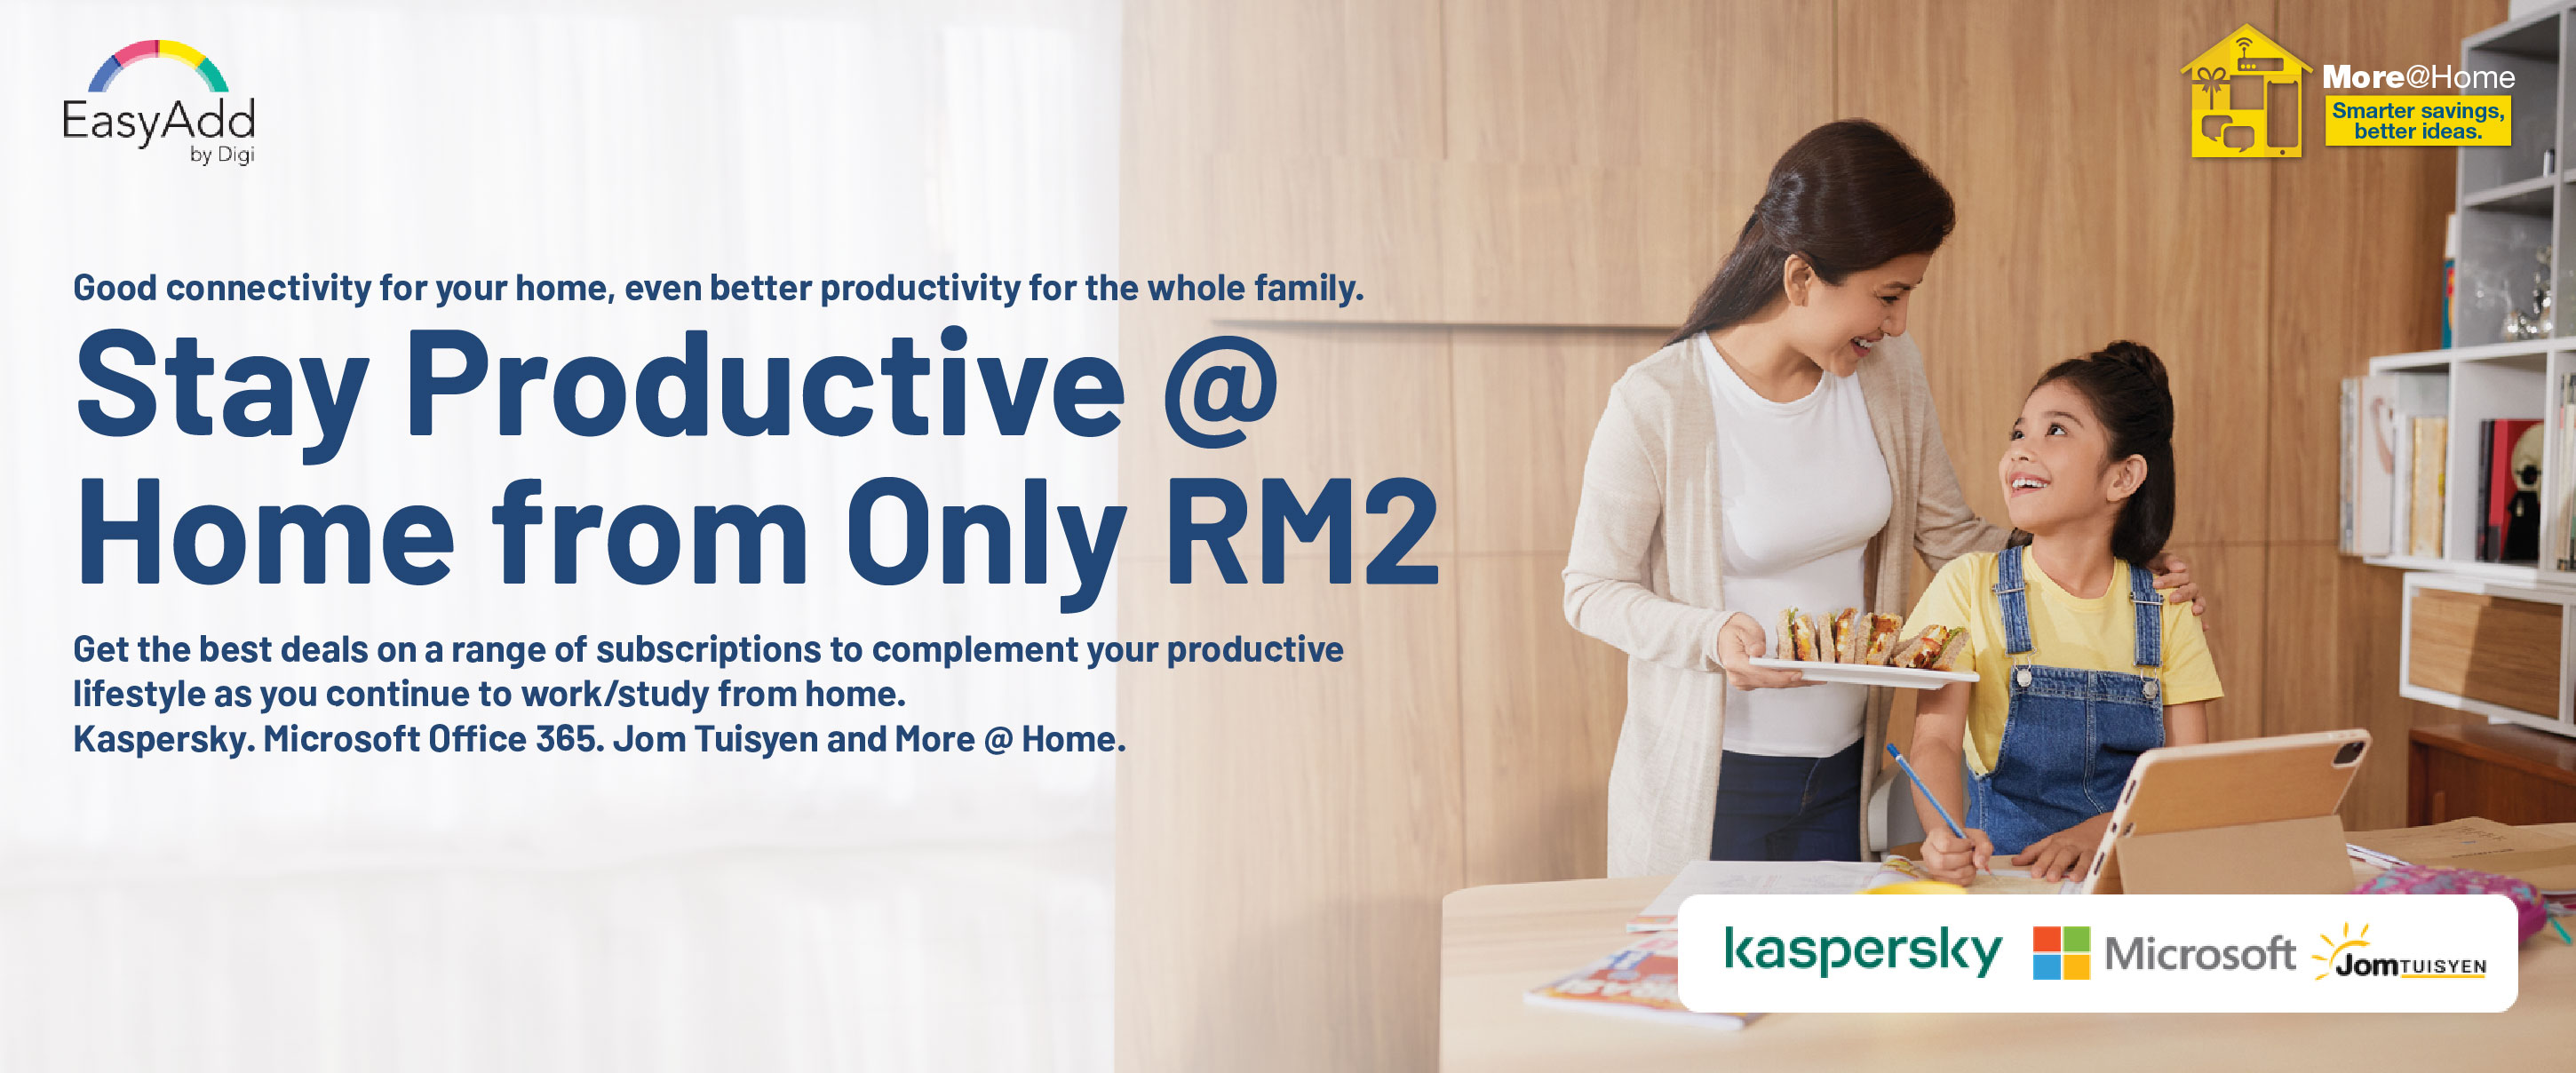 Stay productive @ home from RM2 only